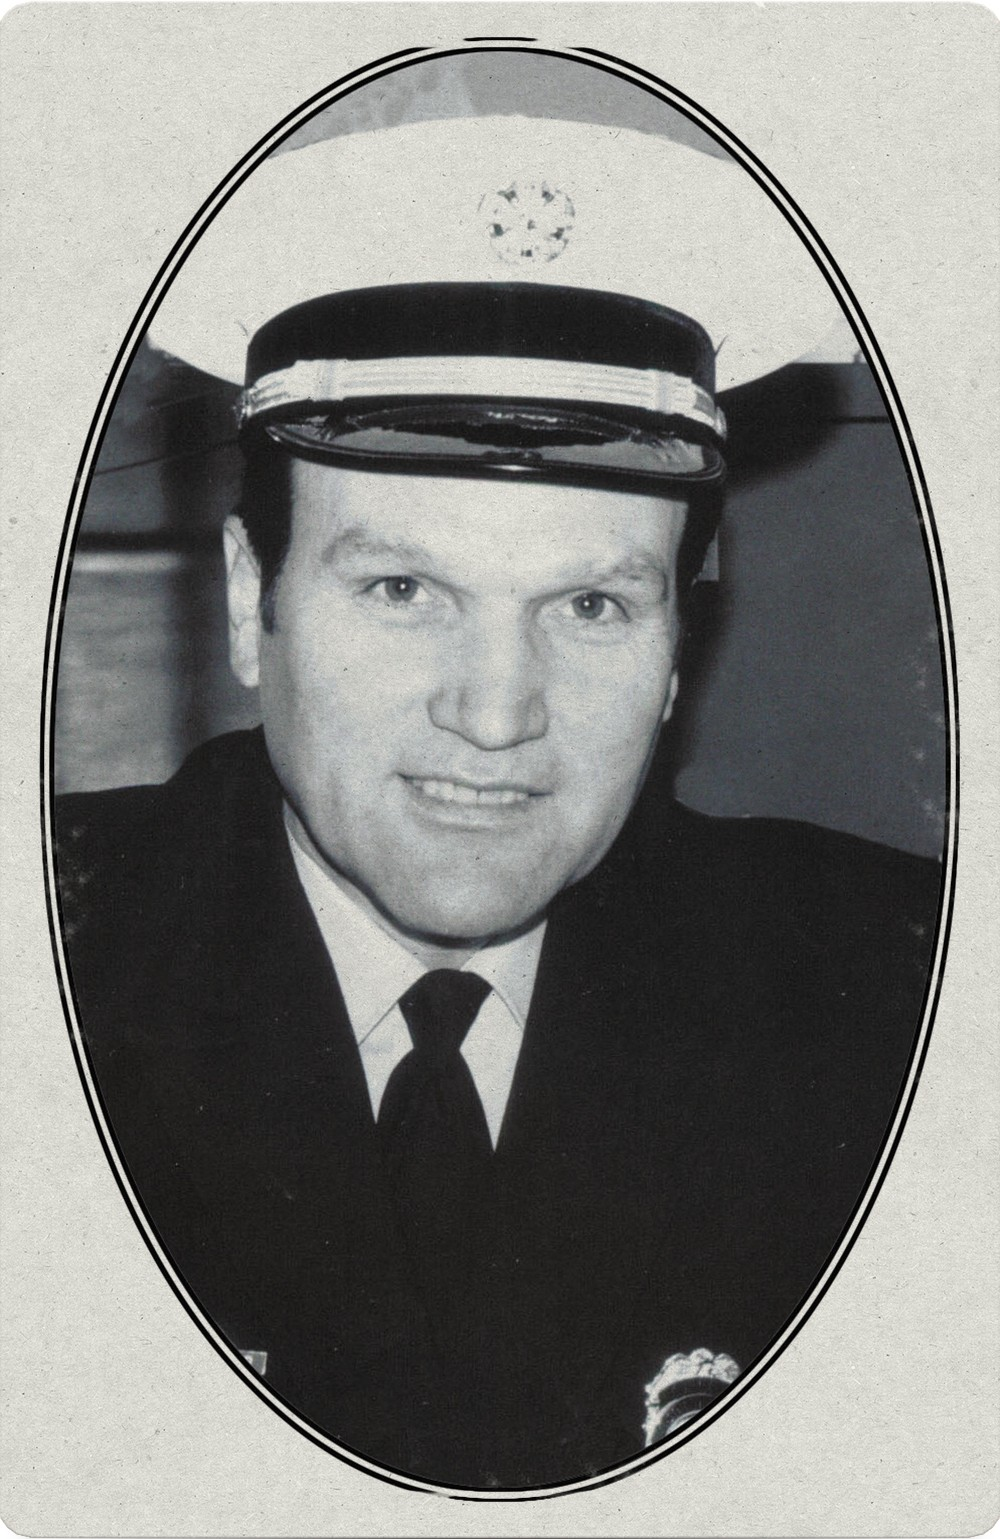 Al O'Connor in his uniform for the Spokane Fire Department, where he served as chief.